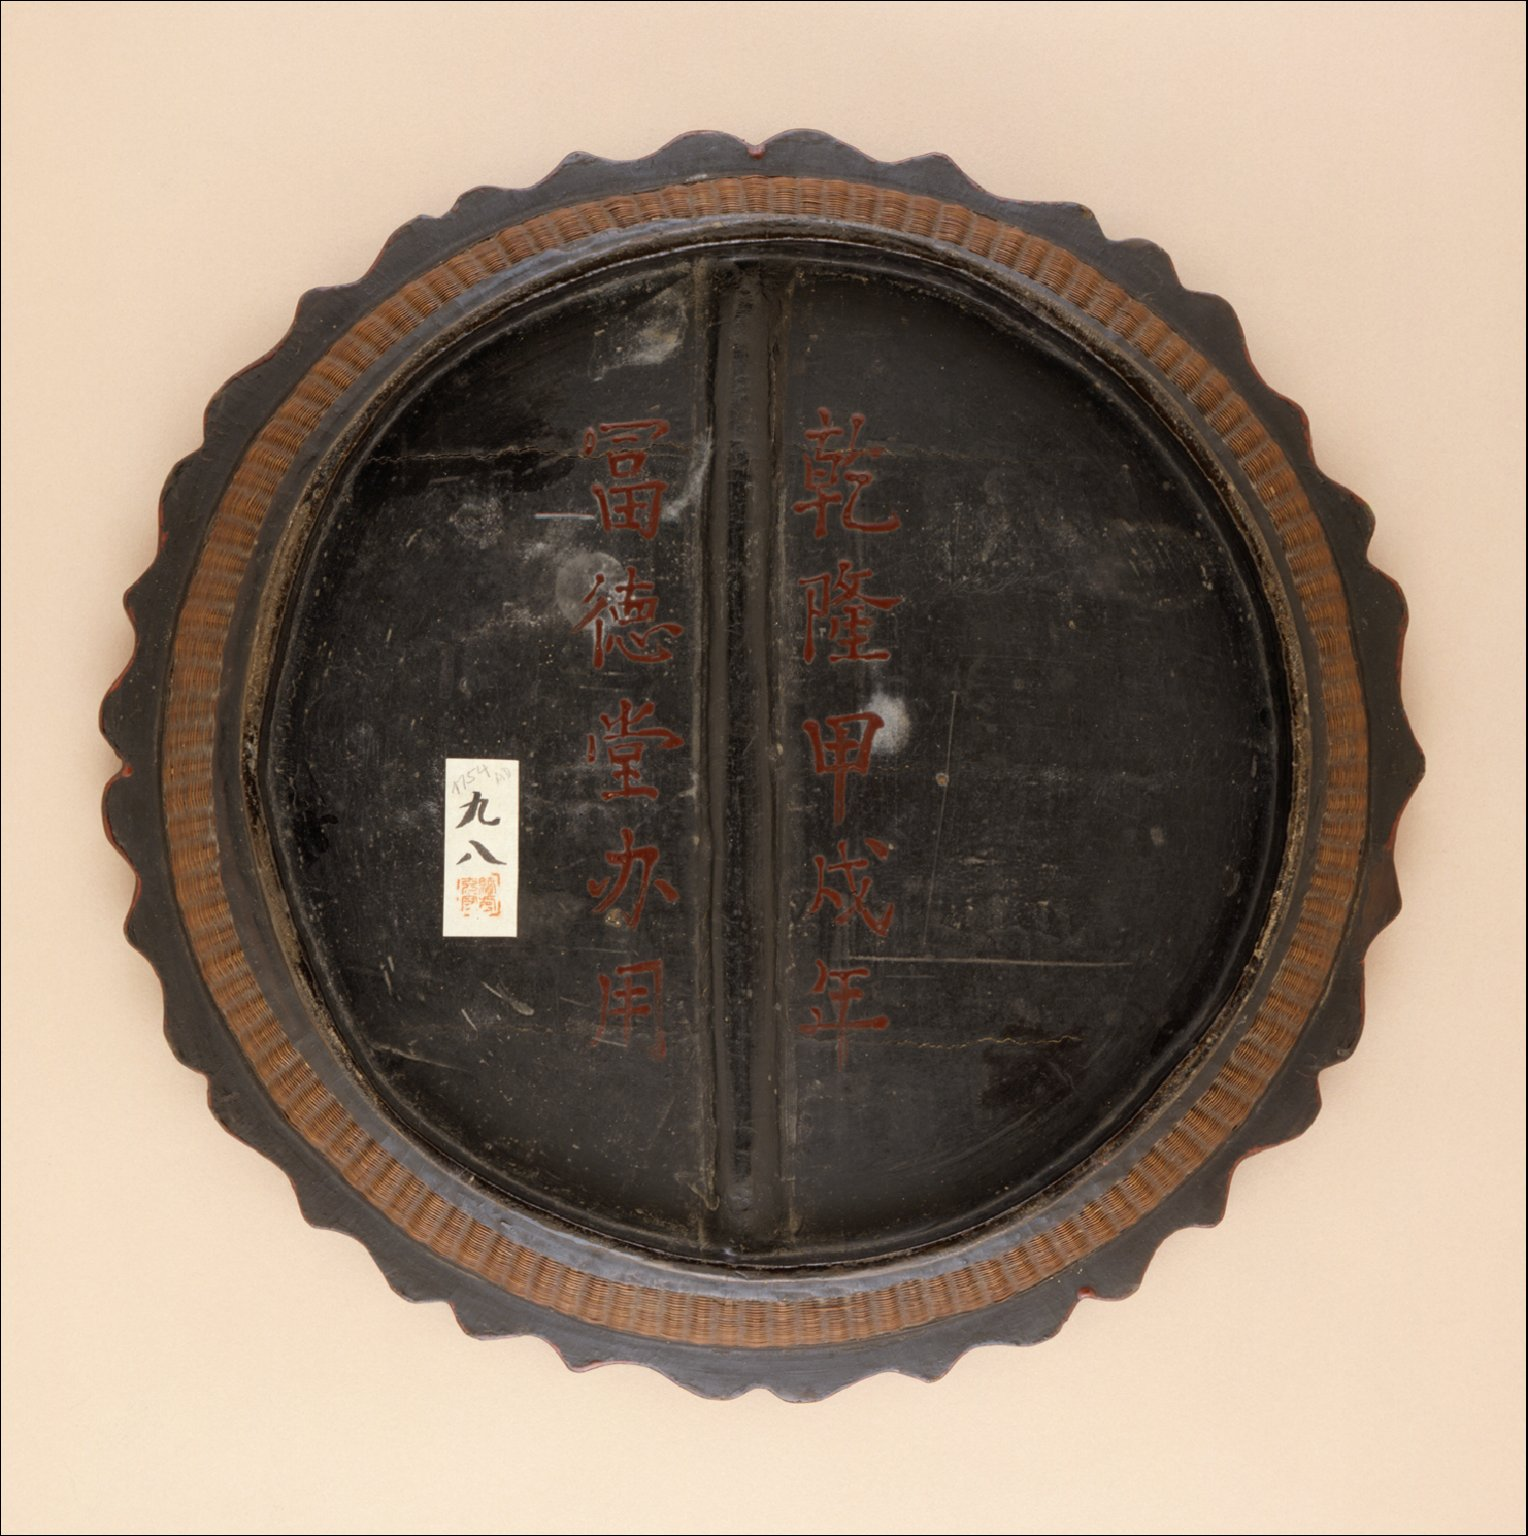 Foliated Tray (Pan) with Diaper Patterns